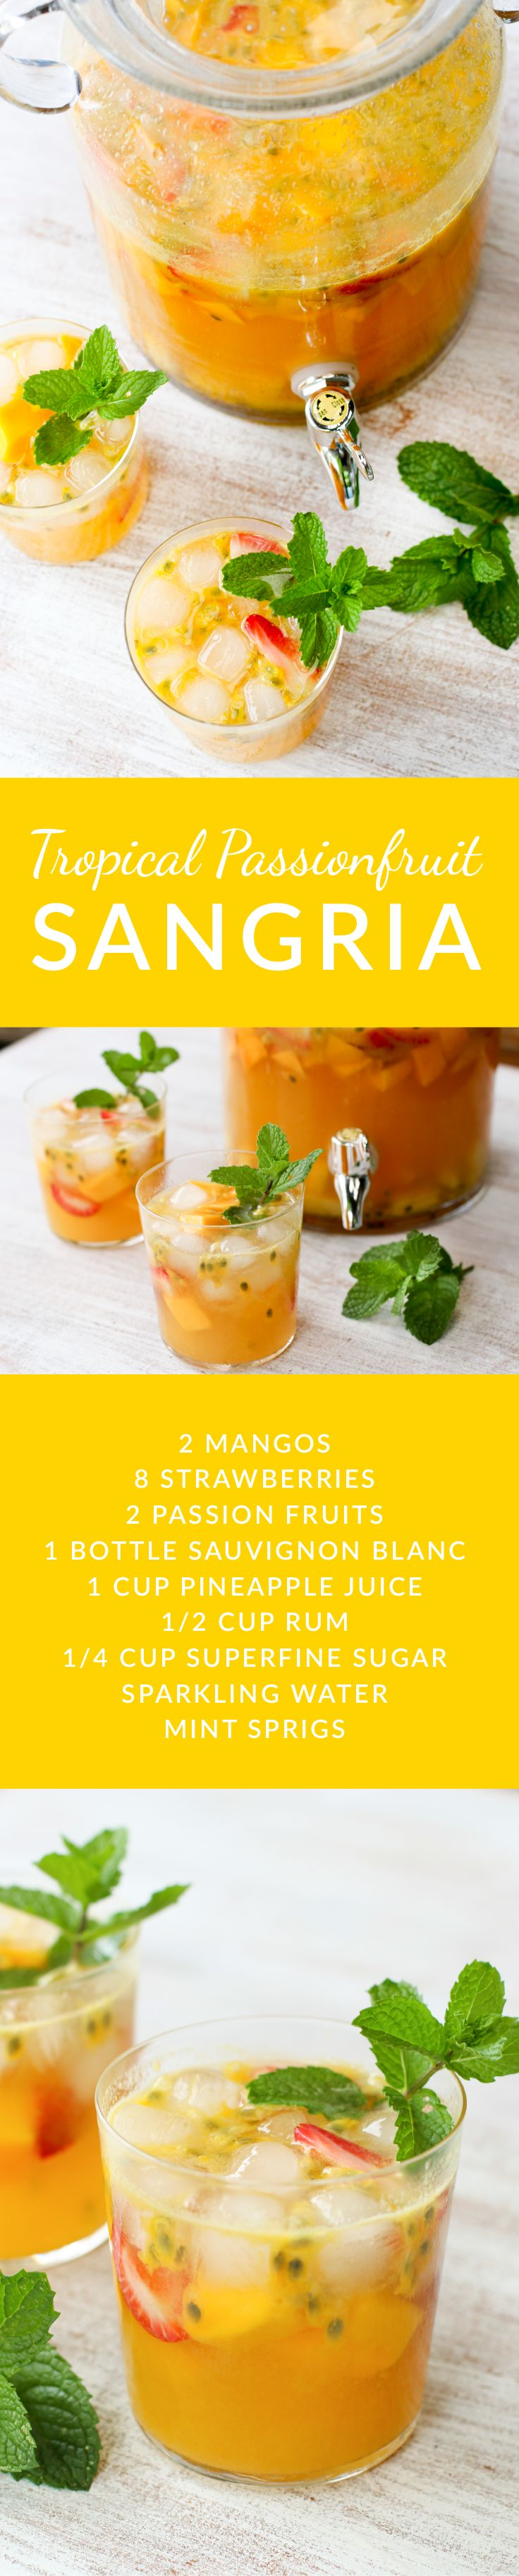 This light, but full-flavored sangria is reminiscent of the vacation of your dreams. Yes, it is that good. The perfect drink for a summer evening whether you are in Honolulu, Noosa, Mal Pais or your backyard.